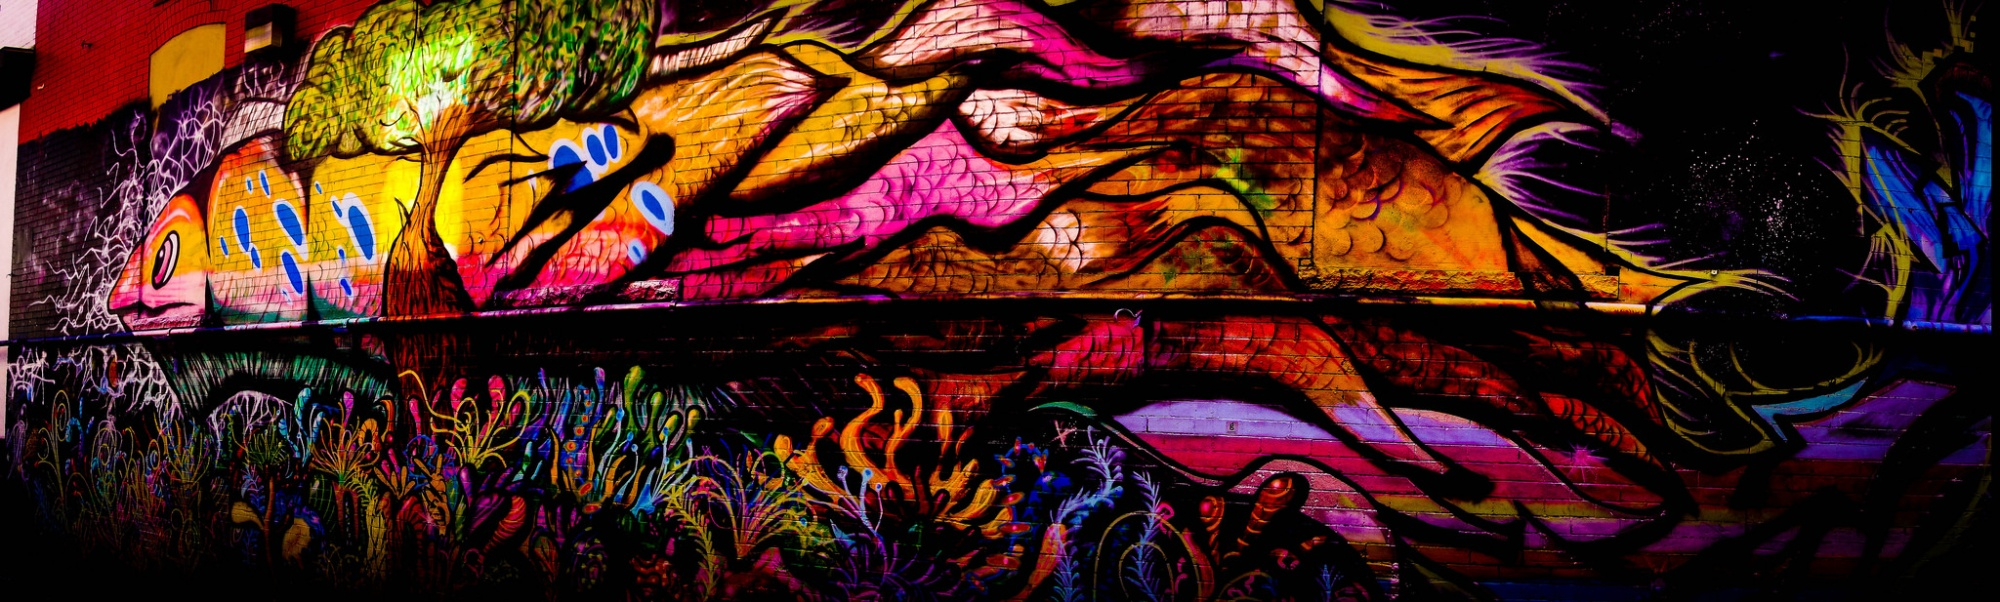 A nighttime mural scene: in neon colors, a tree in front of a giant fish. The bottom half is a neon waterscape with coal. The fish is both in and out of the water.